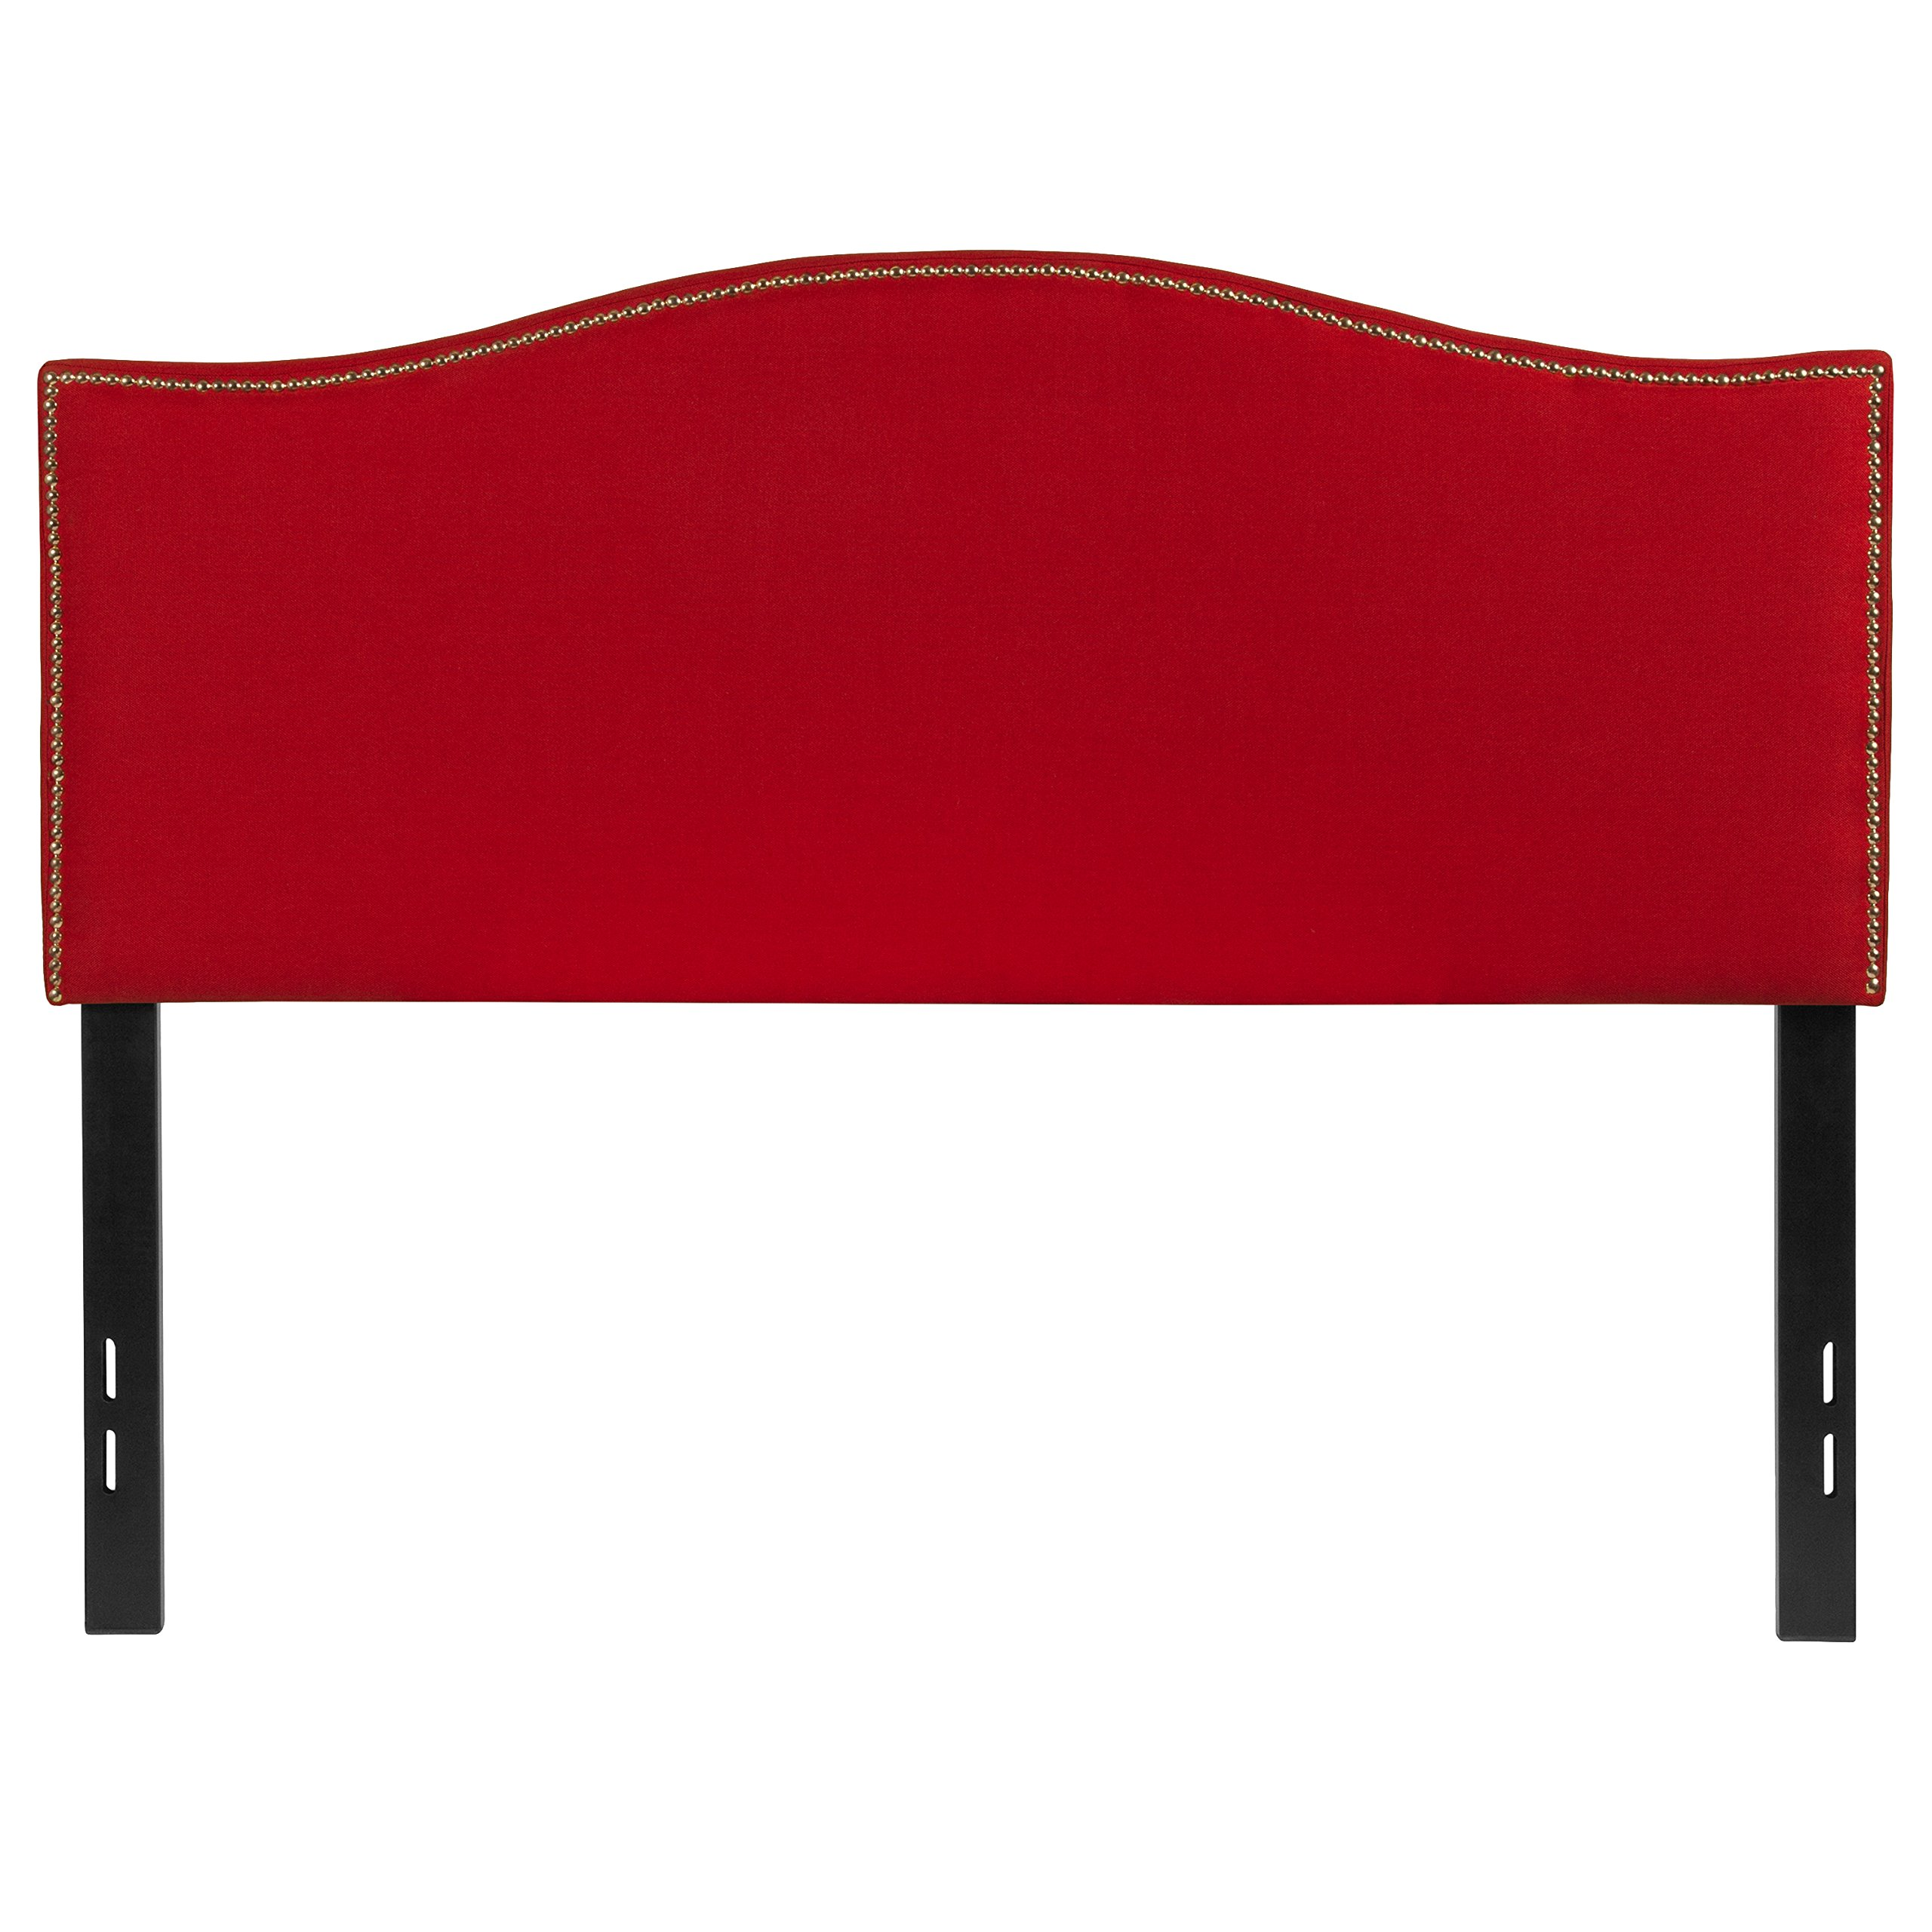 Flash Furniture Lexington Upholstered Full Size Headboard with Accent Nail Trim in Red Fabric